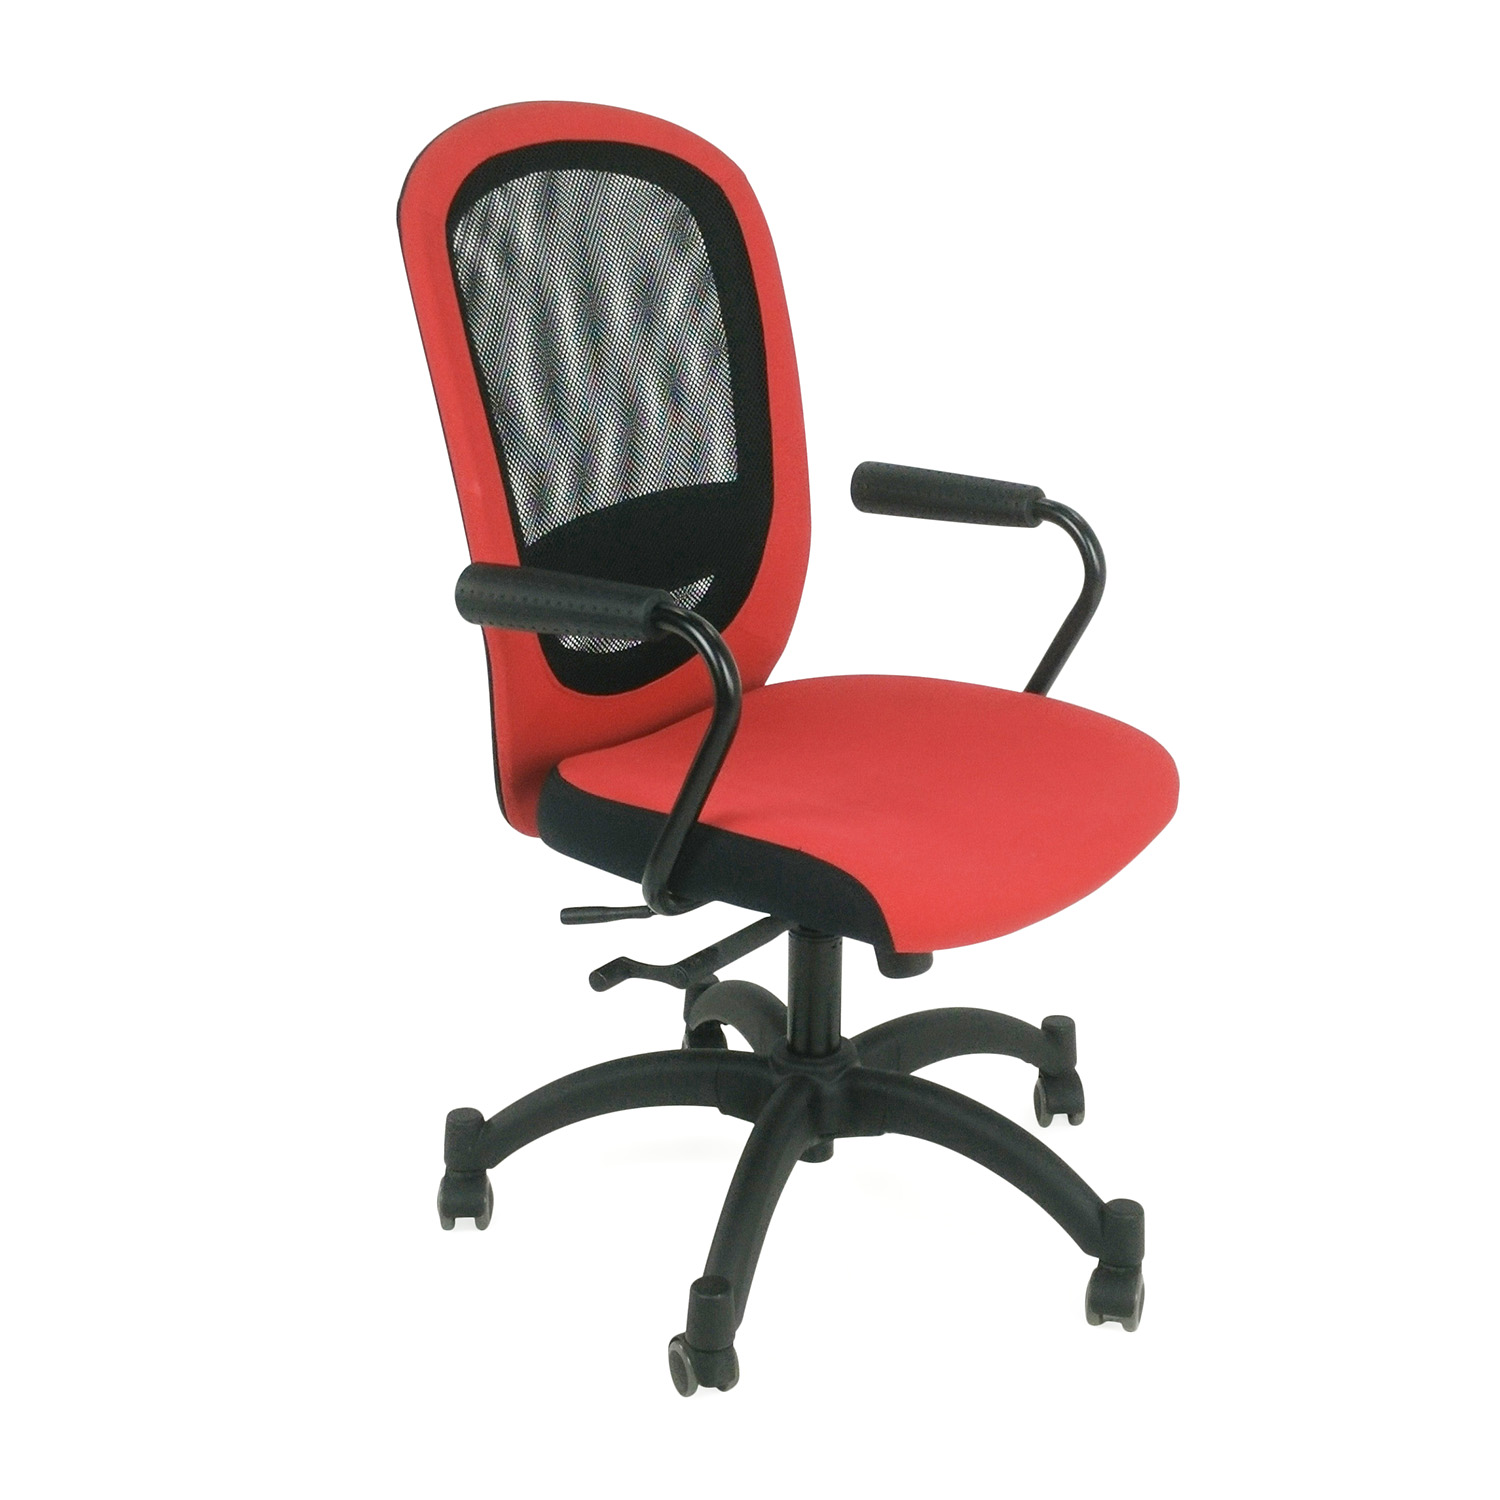 Ikea Red Office Chair Furnishare